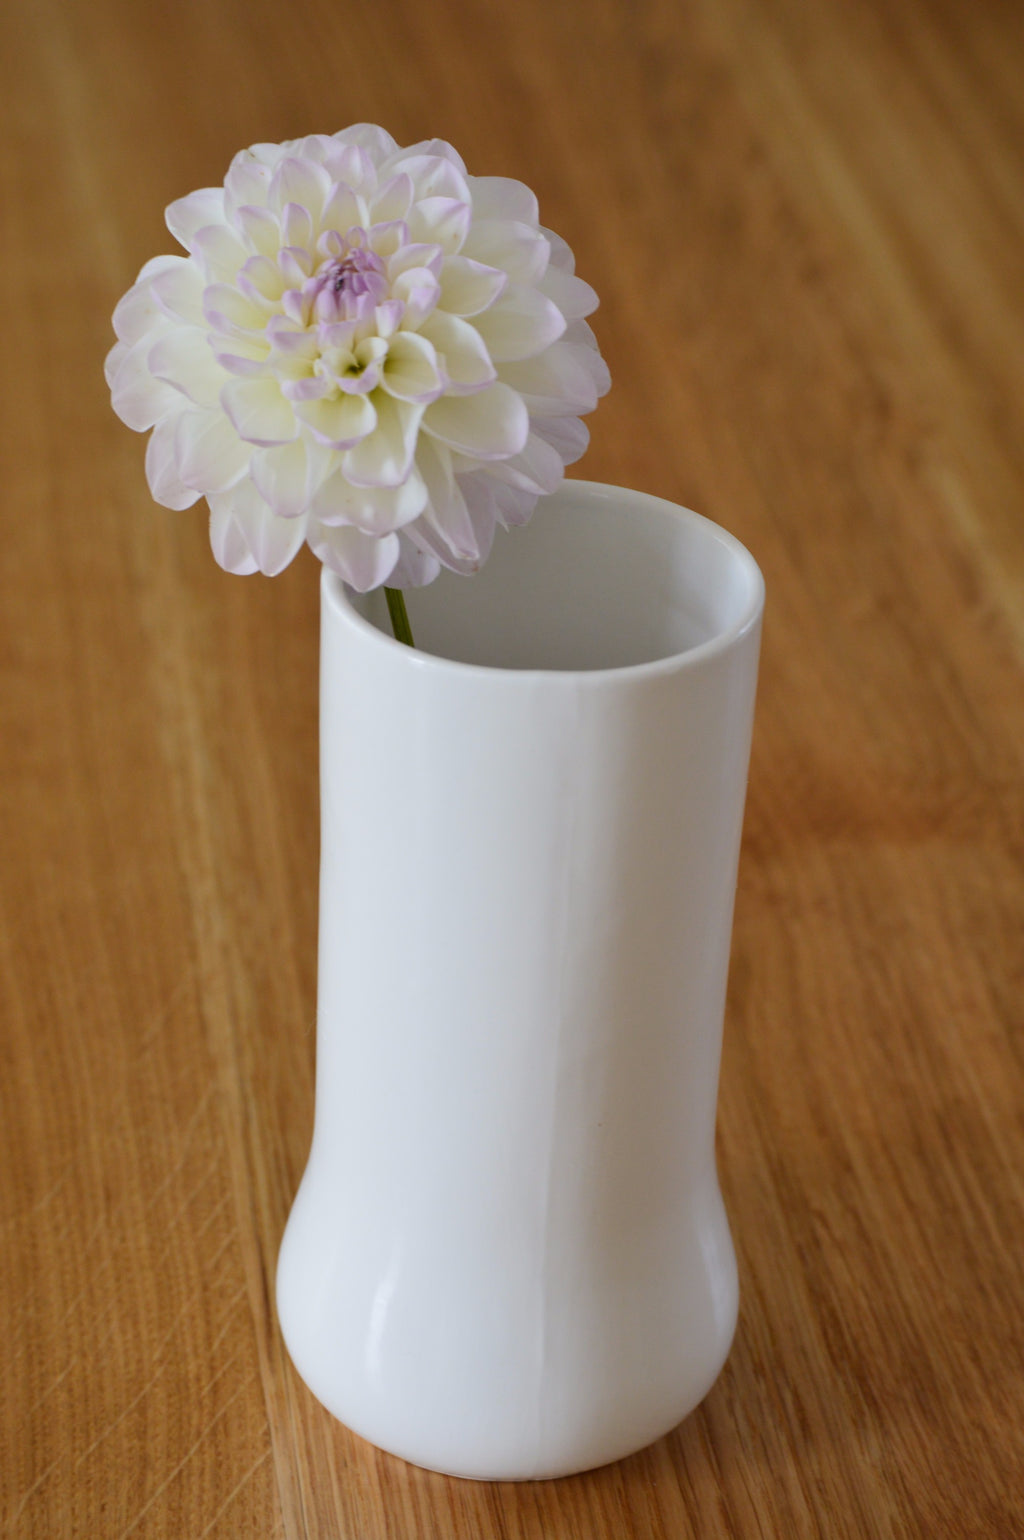 White ceramic flower vase. Handmade in the UK